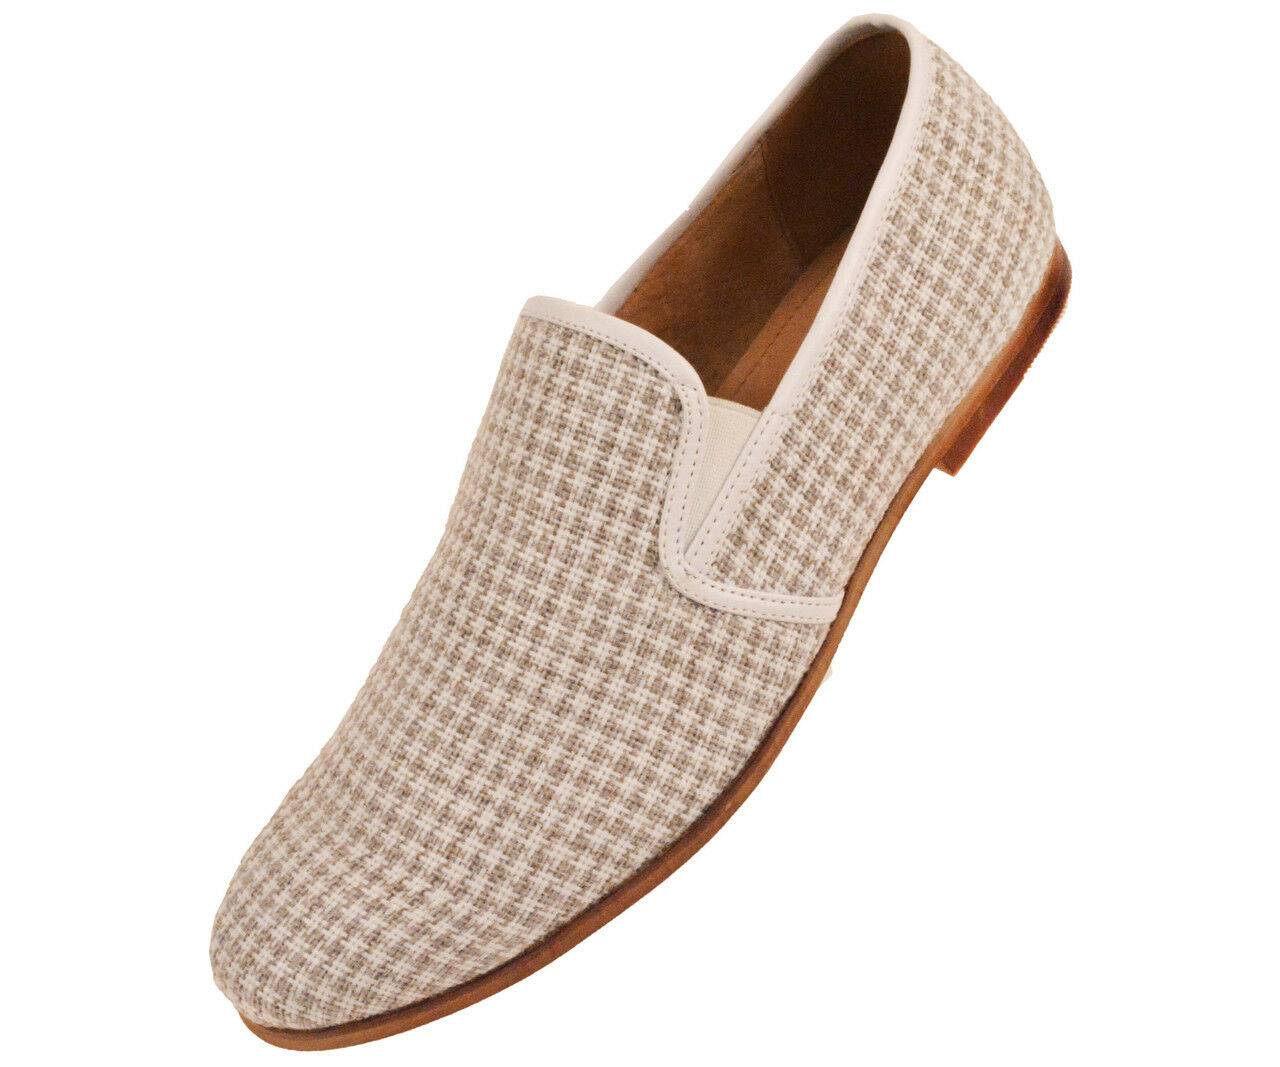 New Mens Taupe & White Houndstooth Knit Slip On Dress Casual Loafer shoes SUMMER